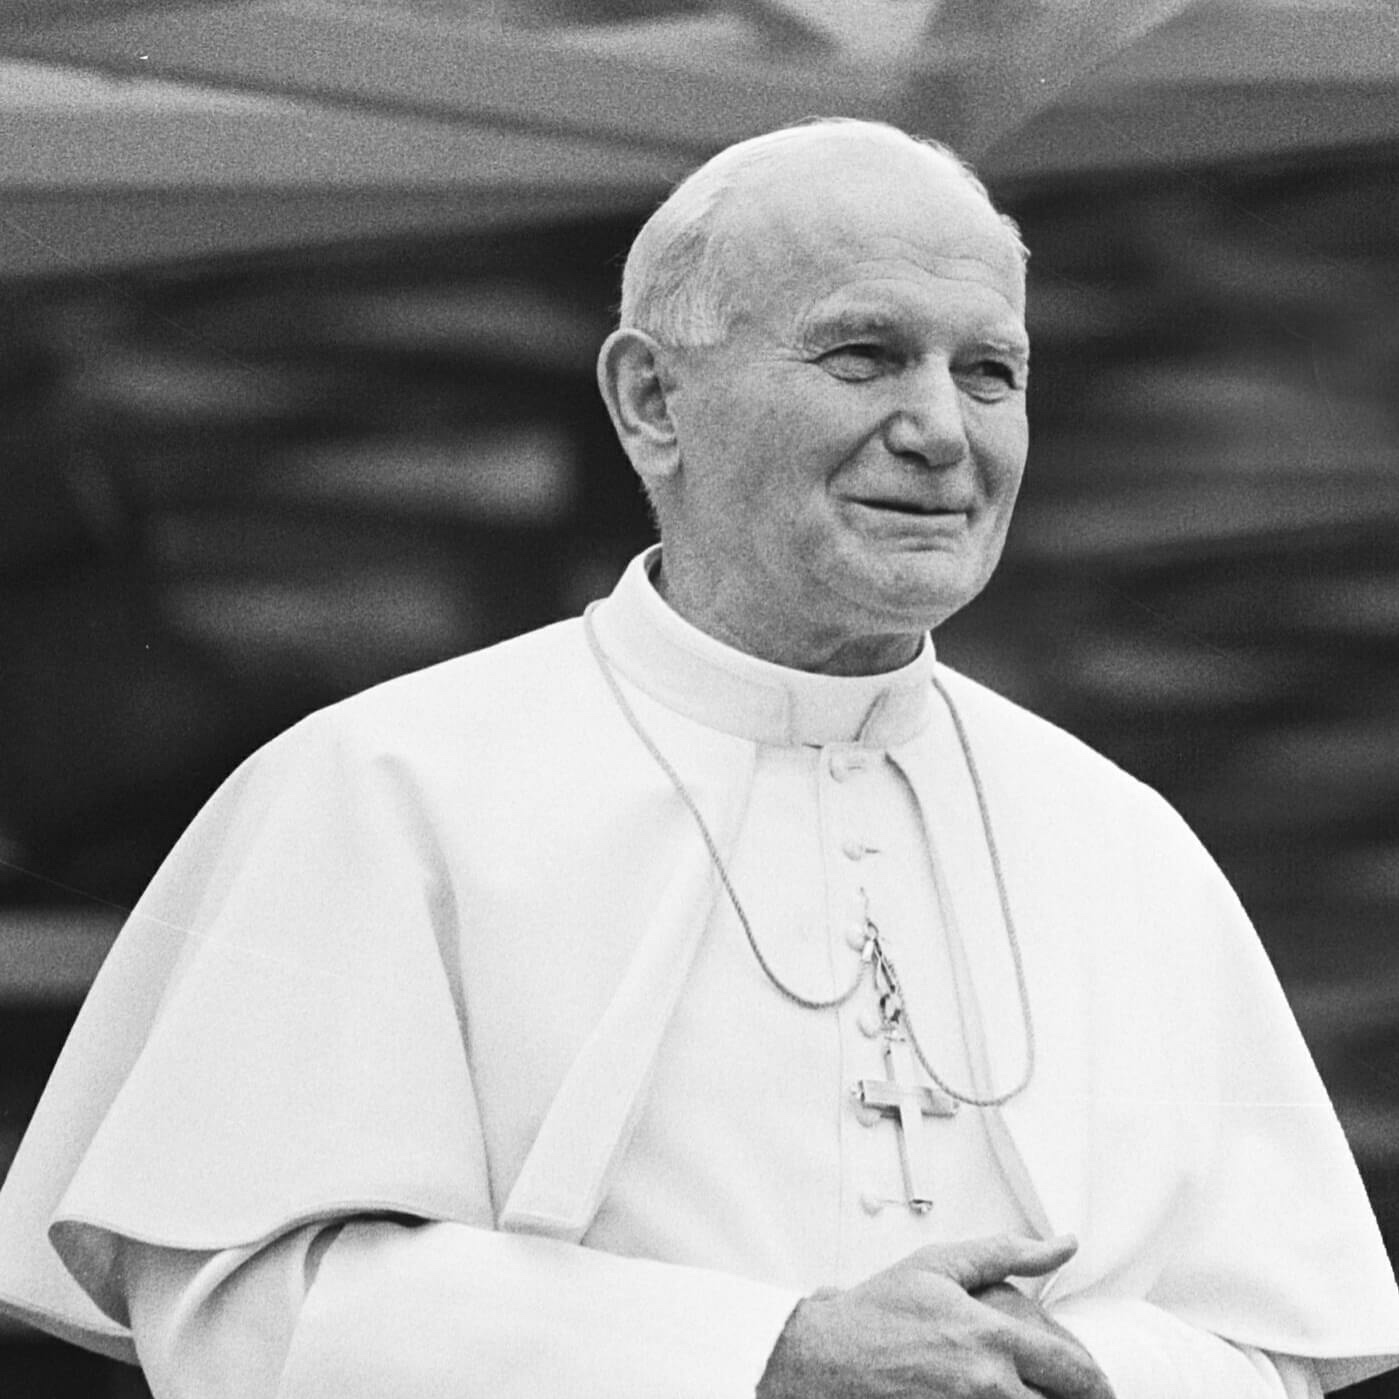 "St. Pope John Paul II - Letter on the Bicentenary of Newman's birth22 January 2001Newman was born in troubled times which knew not only political and military upheaval but also turbulence of soul. Old certitudes were shaken, and believers were faced with the threat of rationalism on the one hand and fideism on the other. Rationalism brought with it a rejection of both authority and transcendence, while fideism turned from the challenges of history and the tasks of this world to a distorted dependence upon authority and the supernatural. In such a world, Newman came eventually to a remarkable synthesis of faith and reason which were for him like two wings on which the human spirit rises to the contemplation of truth … ""Lead kindly light amid the encircling gloom, lead Thou me on"", Newman wrote in The Pillar of the Cloud; and for him Christ was the light at the heart of every kind of darkness. For his tomb he chose the inscription: Ex umbris et imaginibus in veritatem; and it was clear at the end of his life's journey that Christ was the truth he had found."